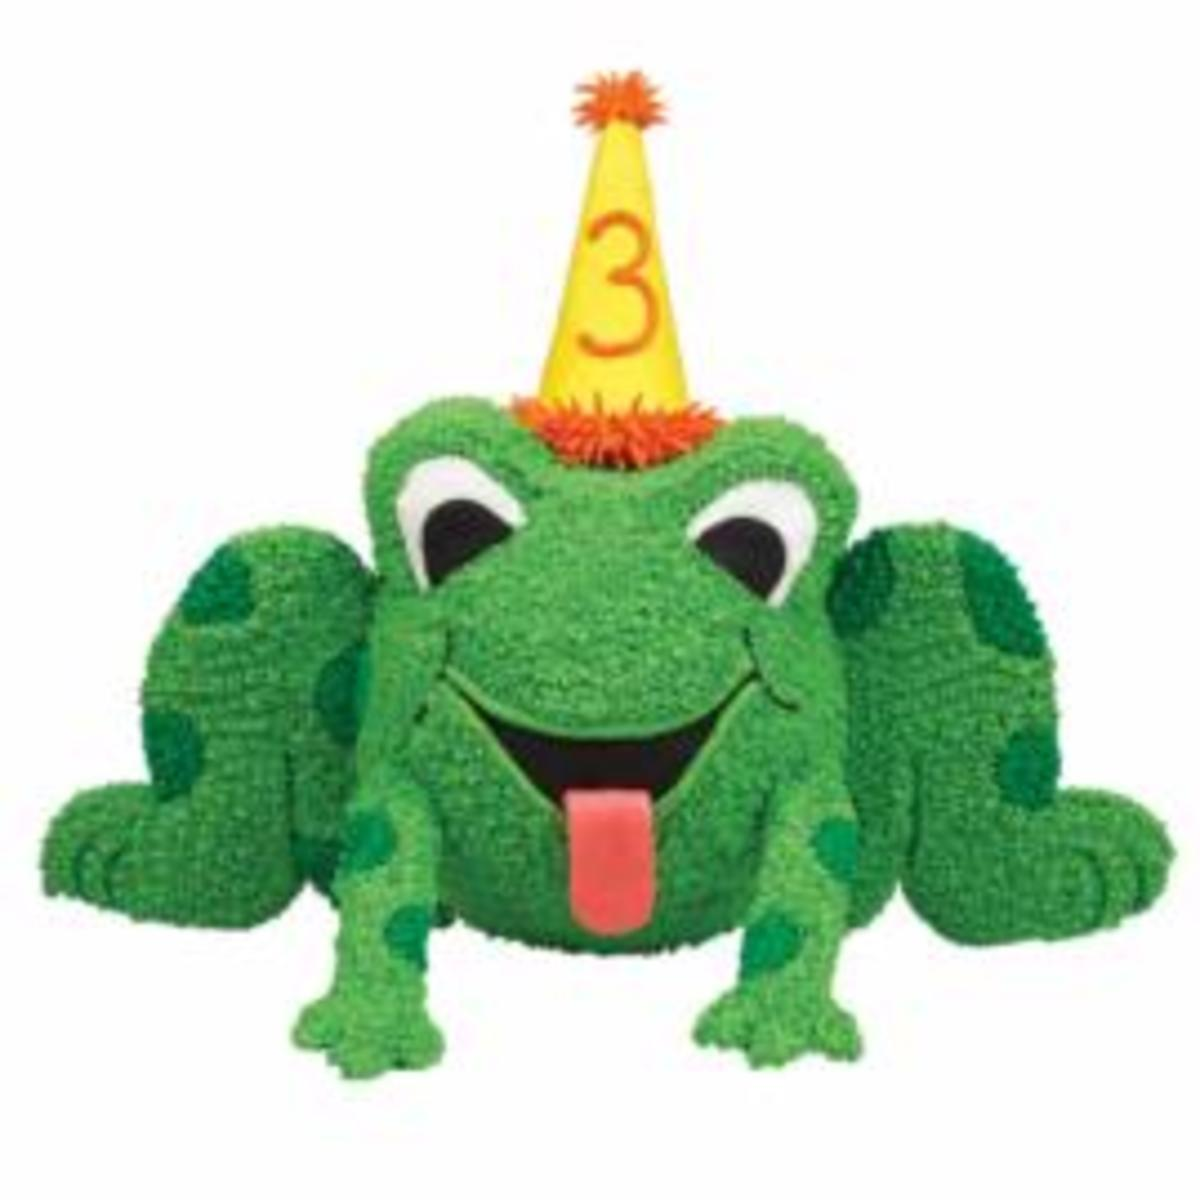 Wilton You can also create a Crown instead of a Birthday Hat for a Frog Prince